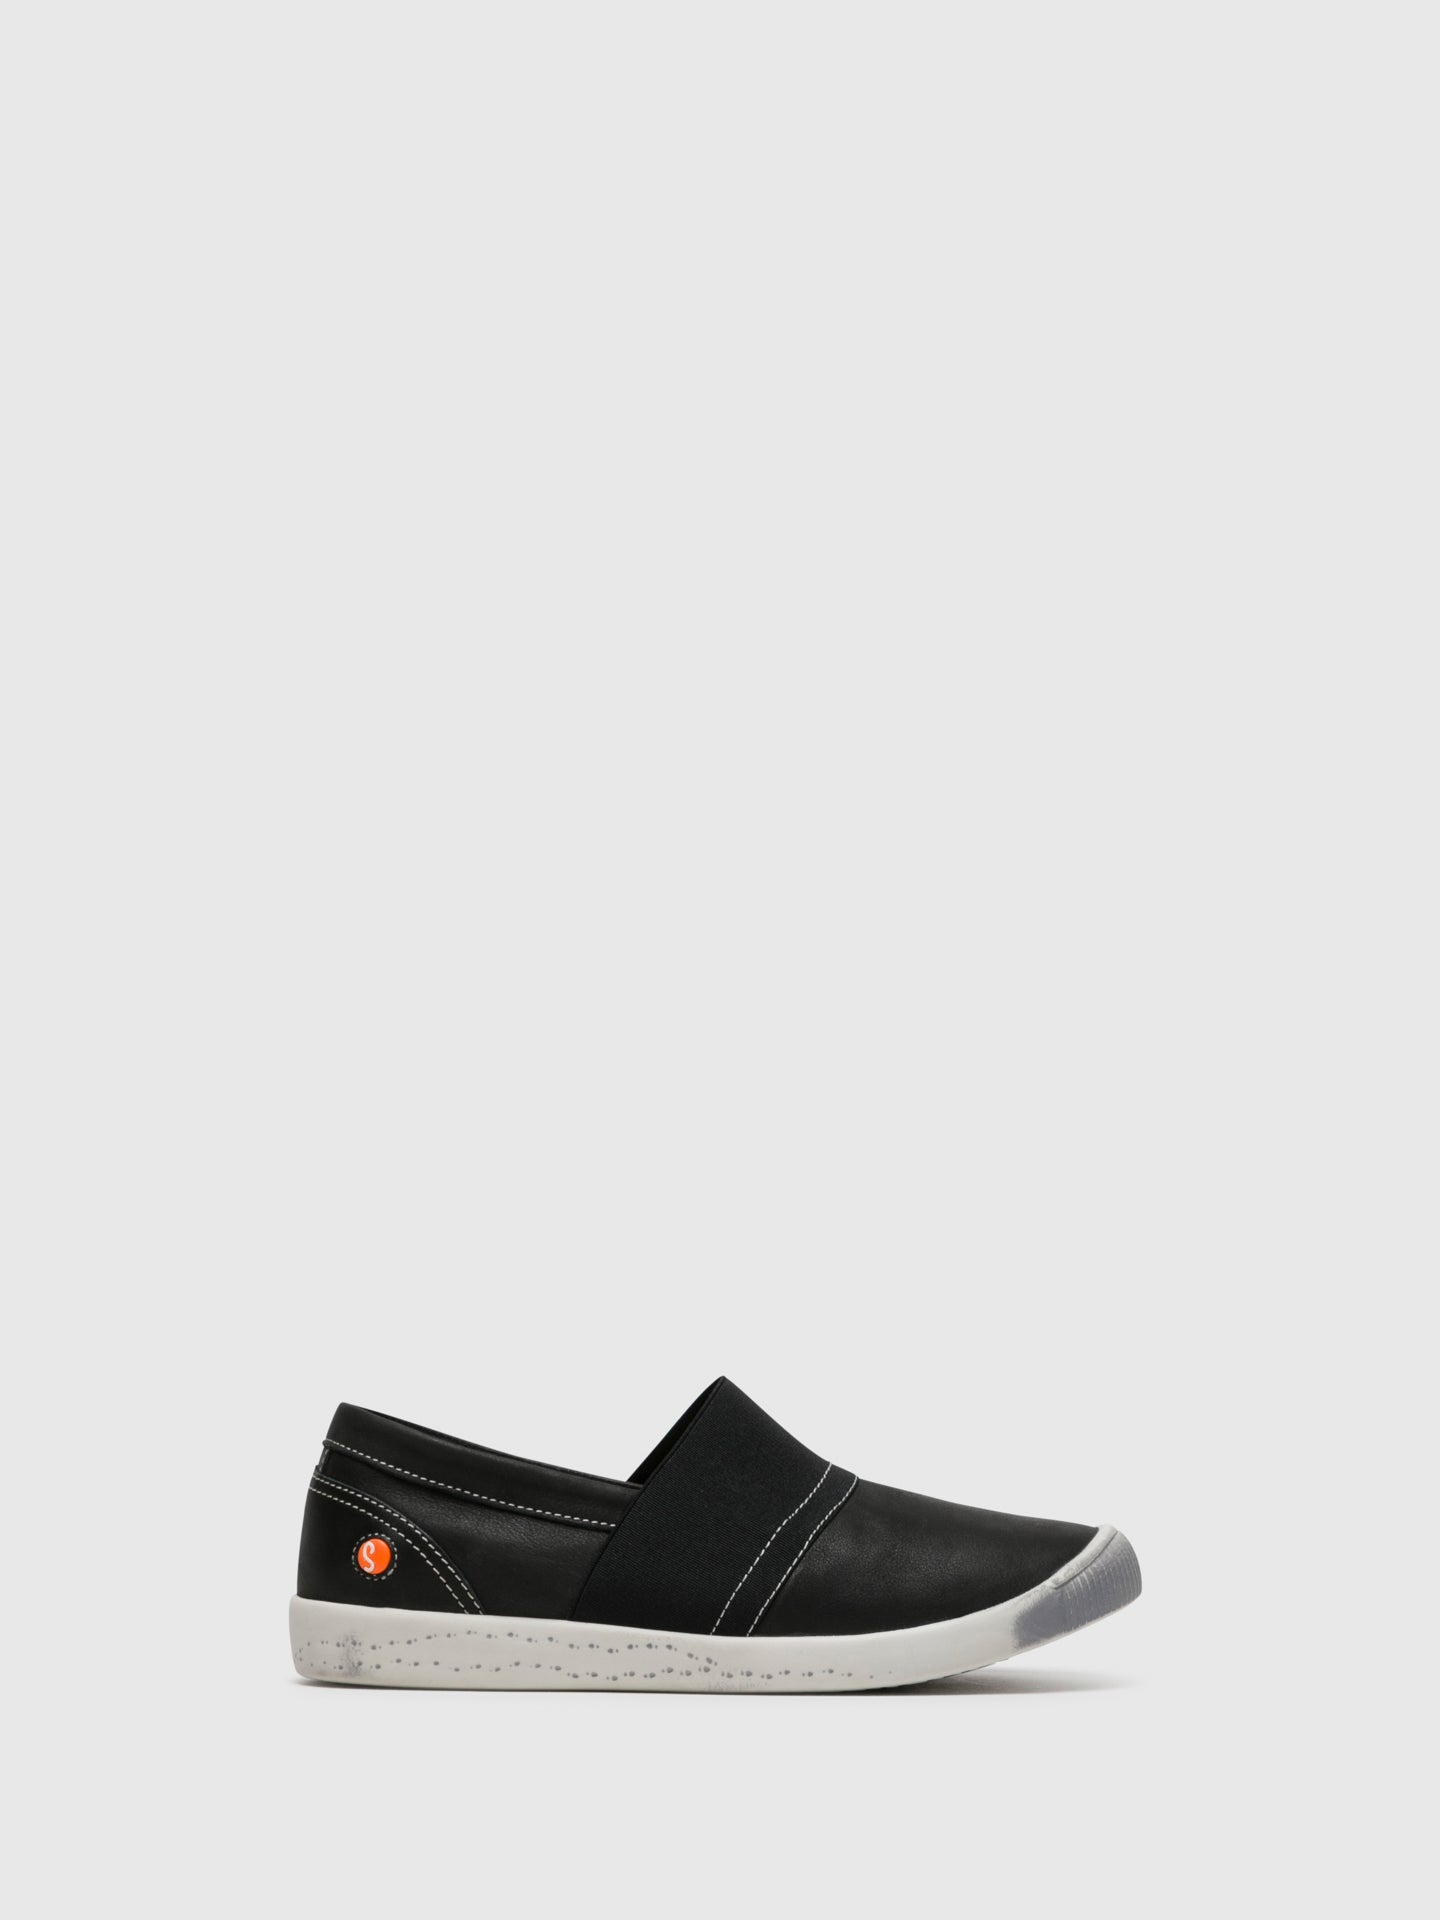 SOFTINOS Black Slip-on Sneakers